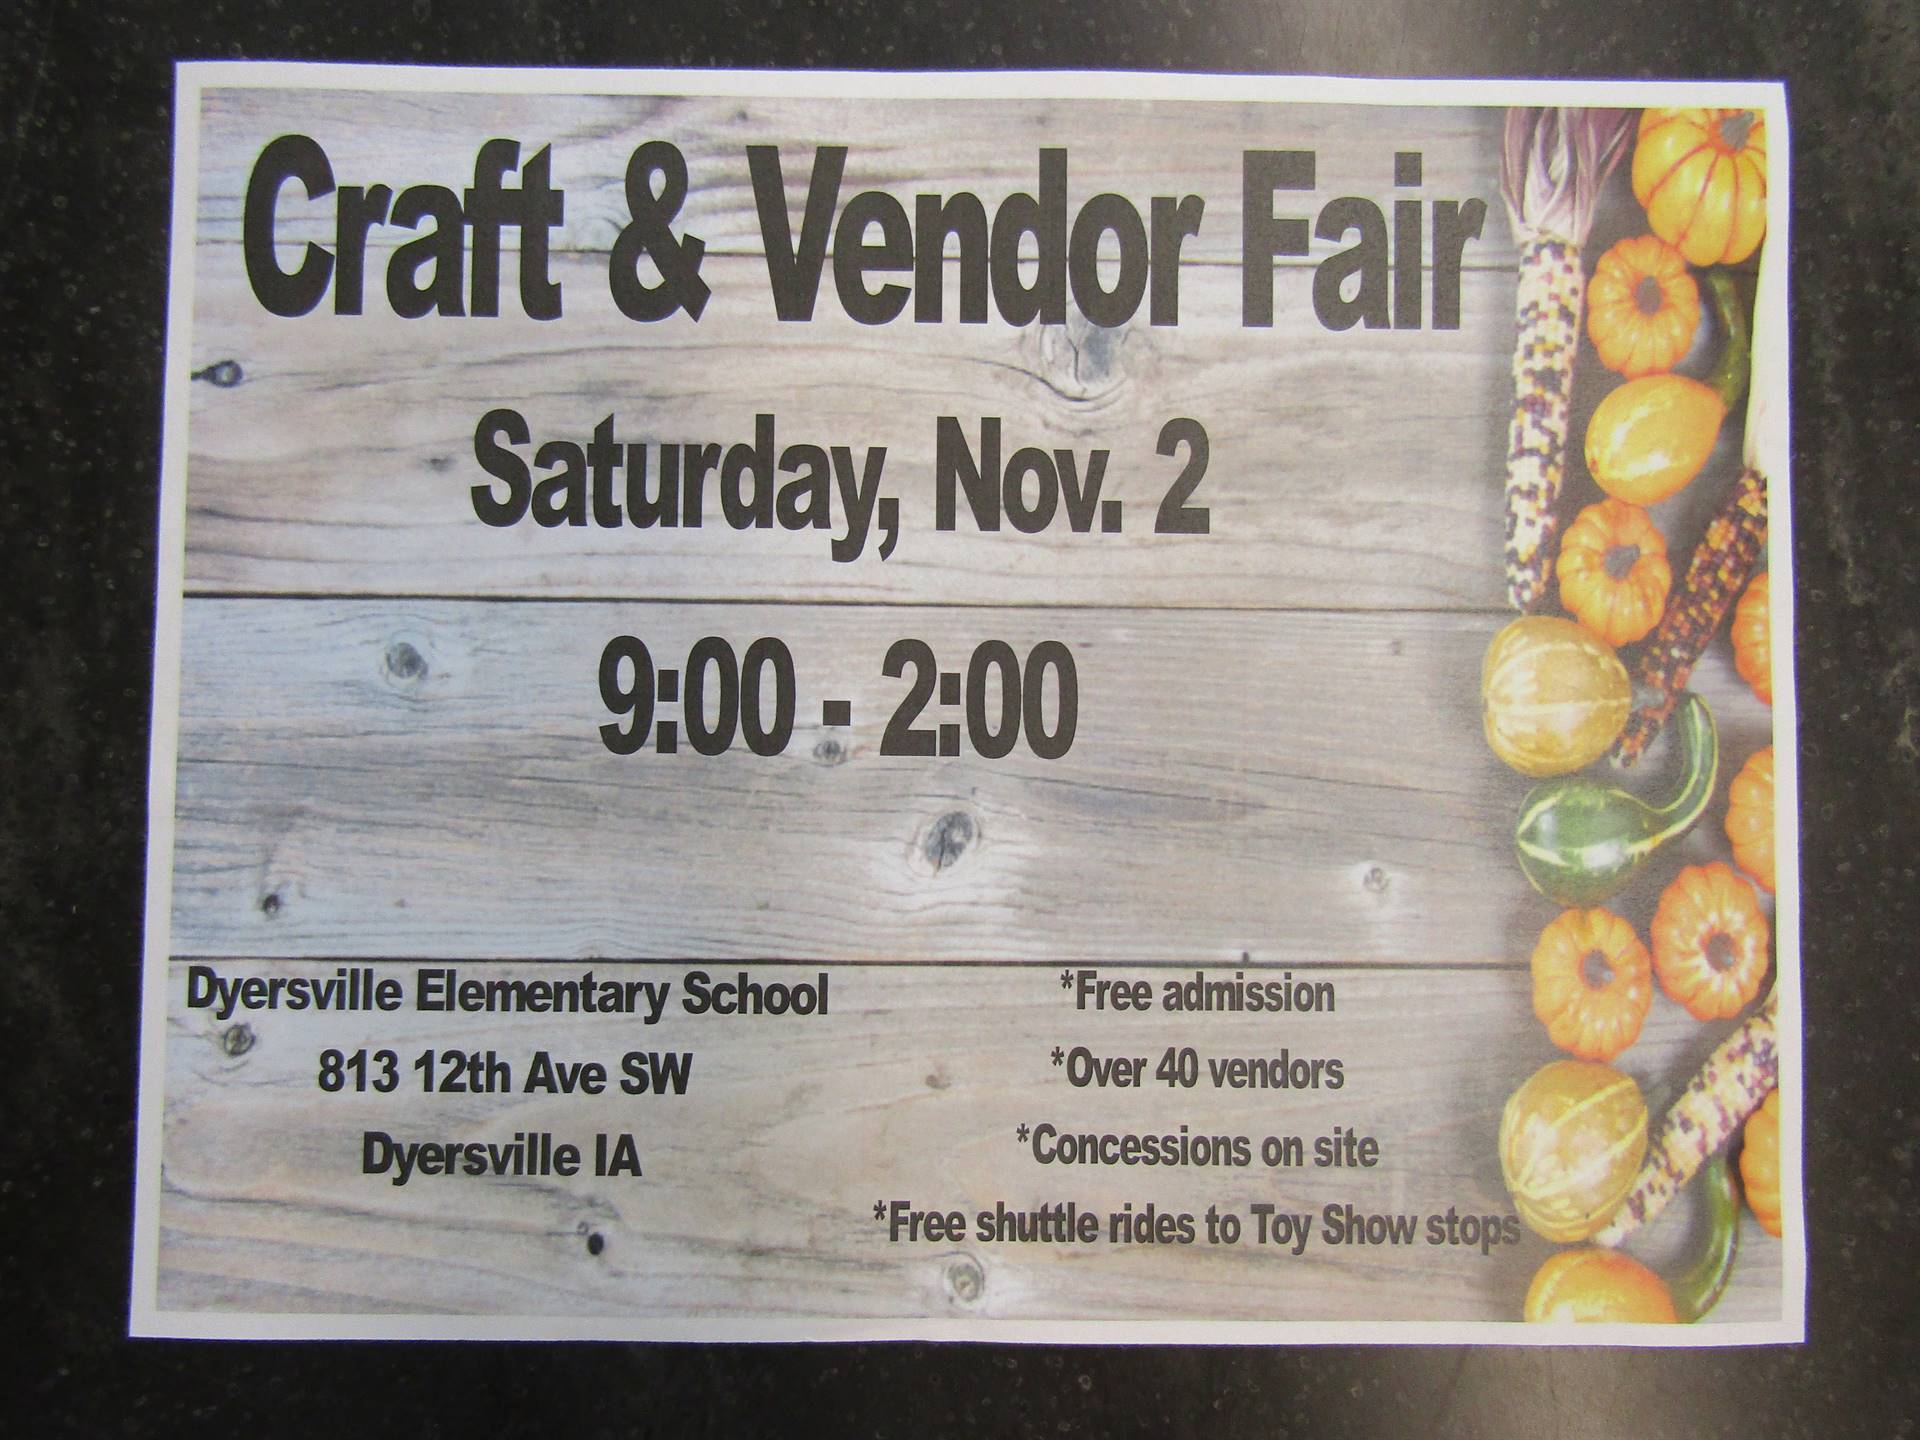 Please consider attending our Craft and Vendor Fair